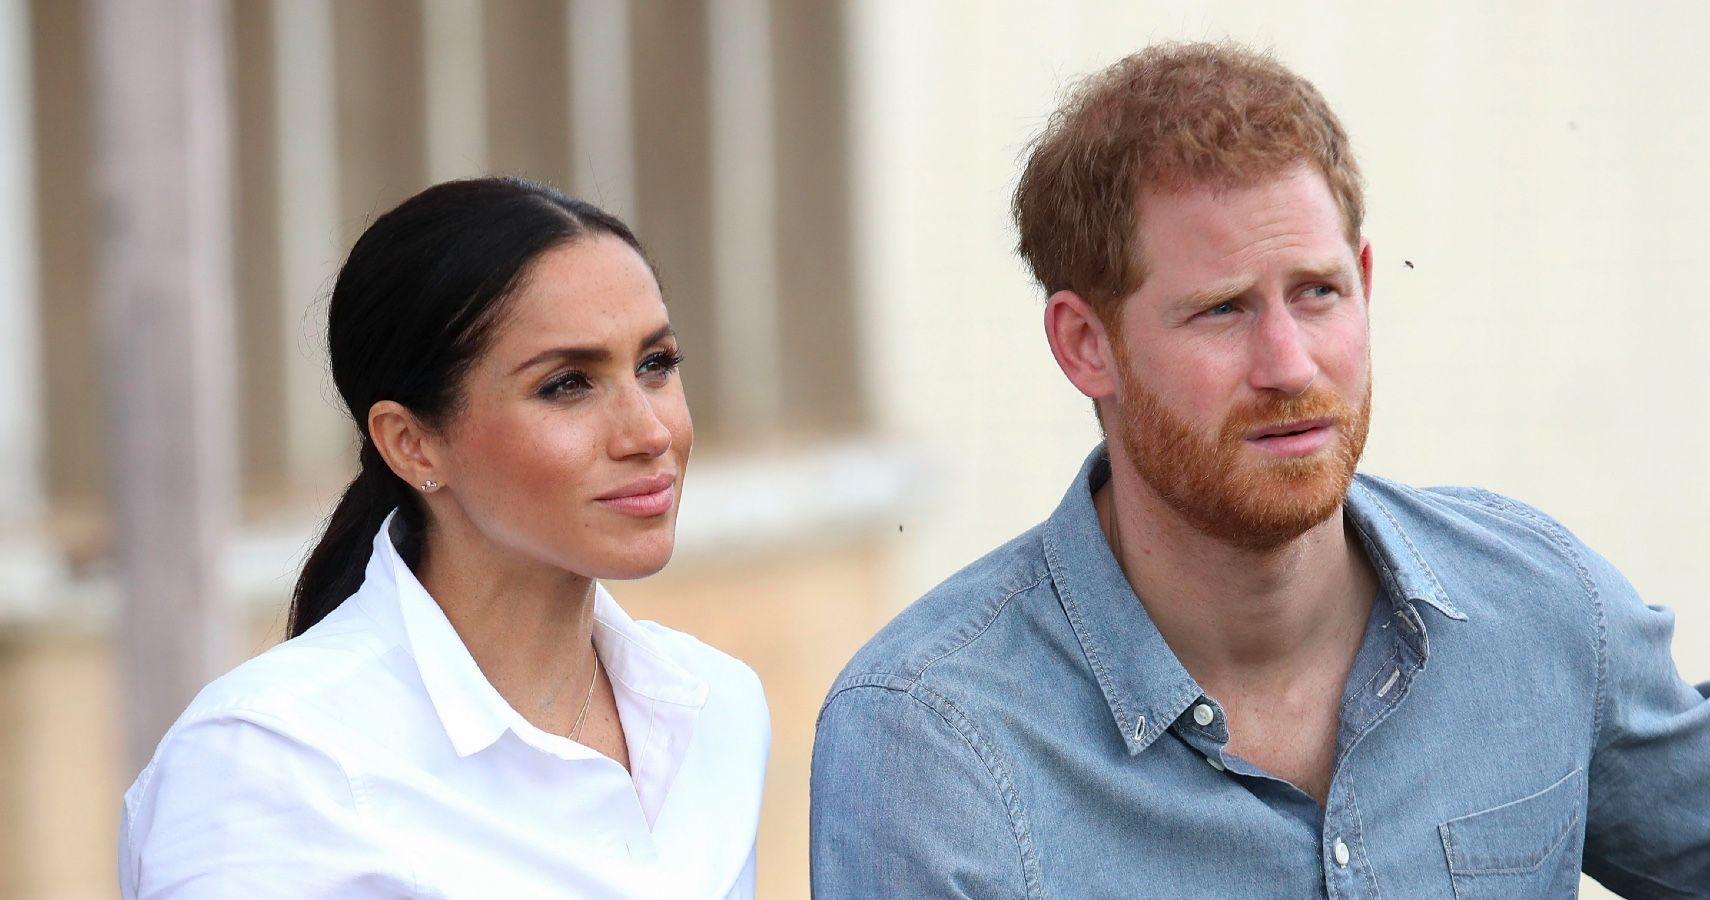 The British Tabloids Slam Harry And Meghan's NYC Visit While Praising William And Kate For Theirs